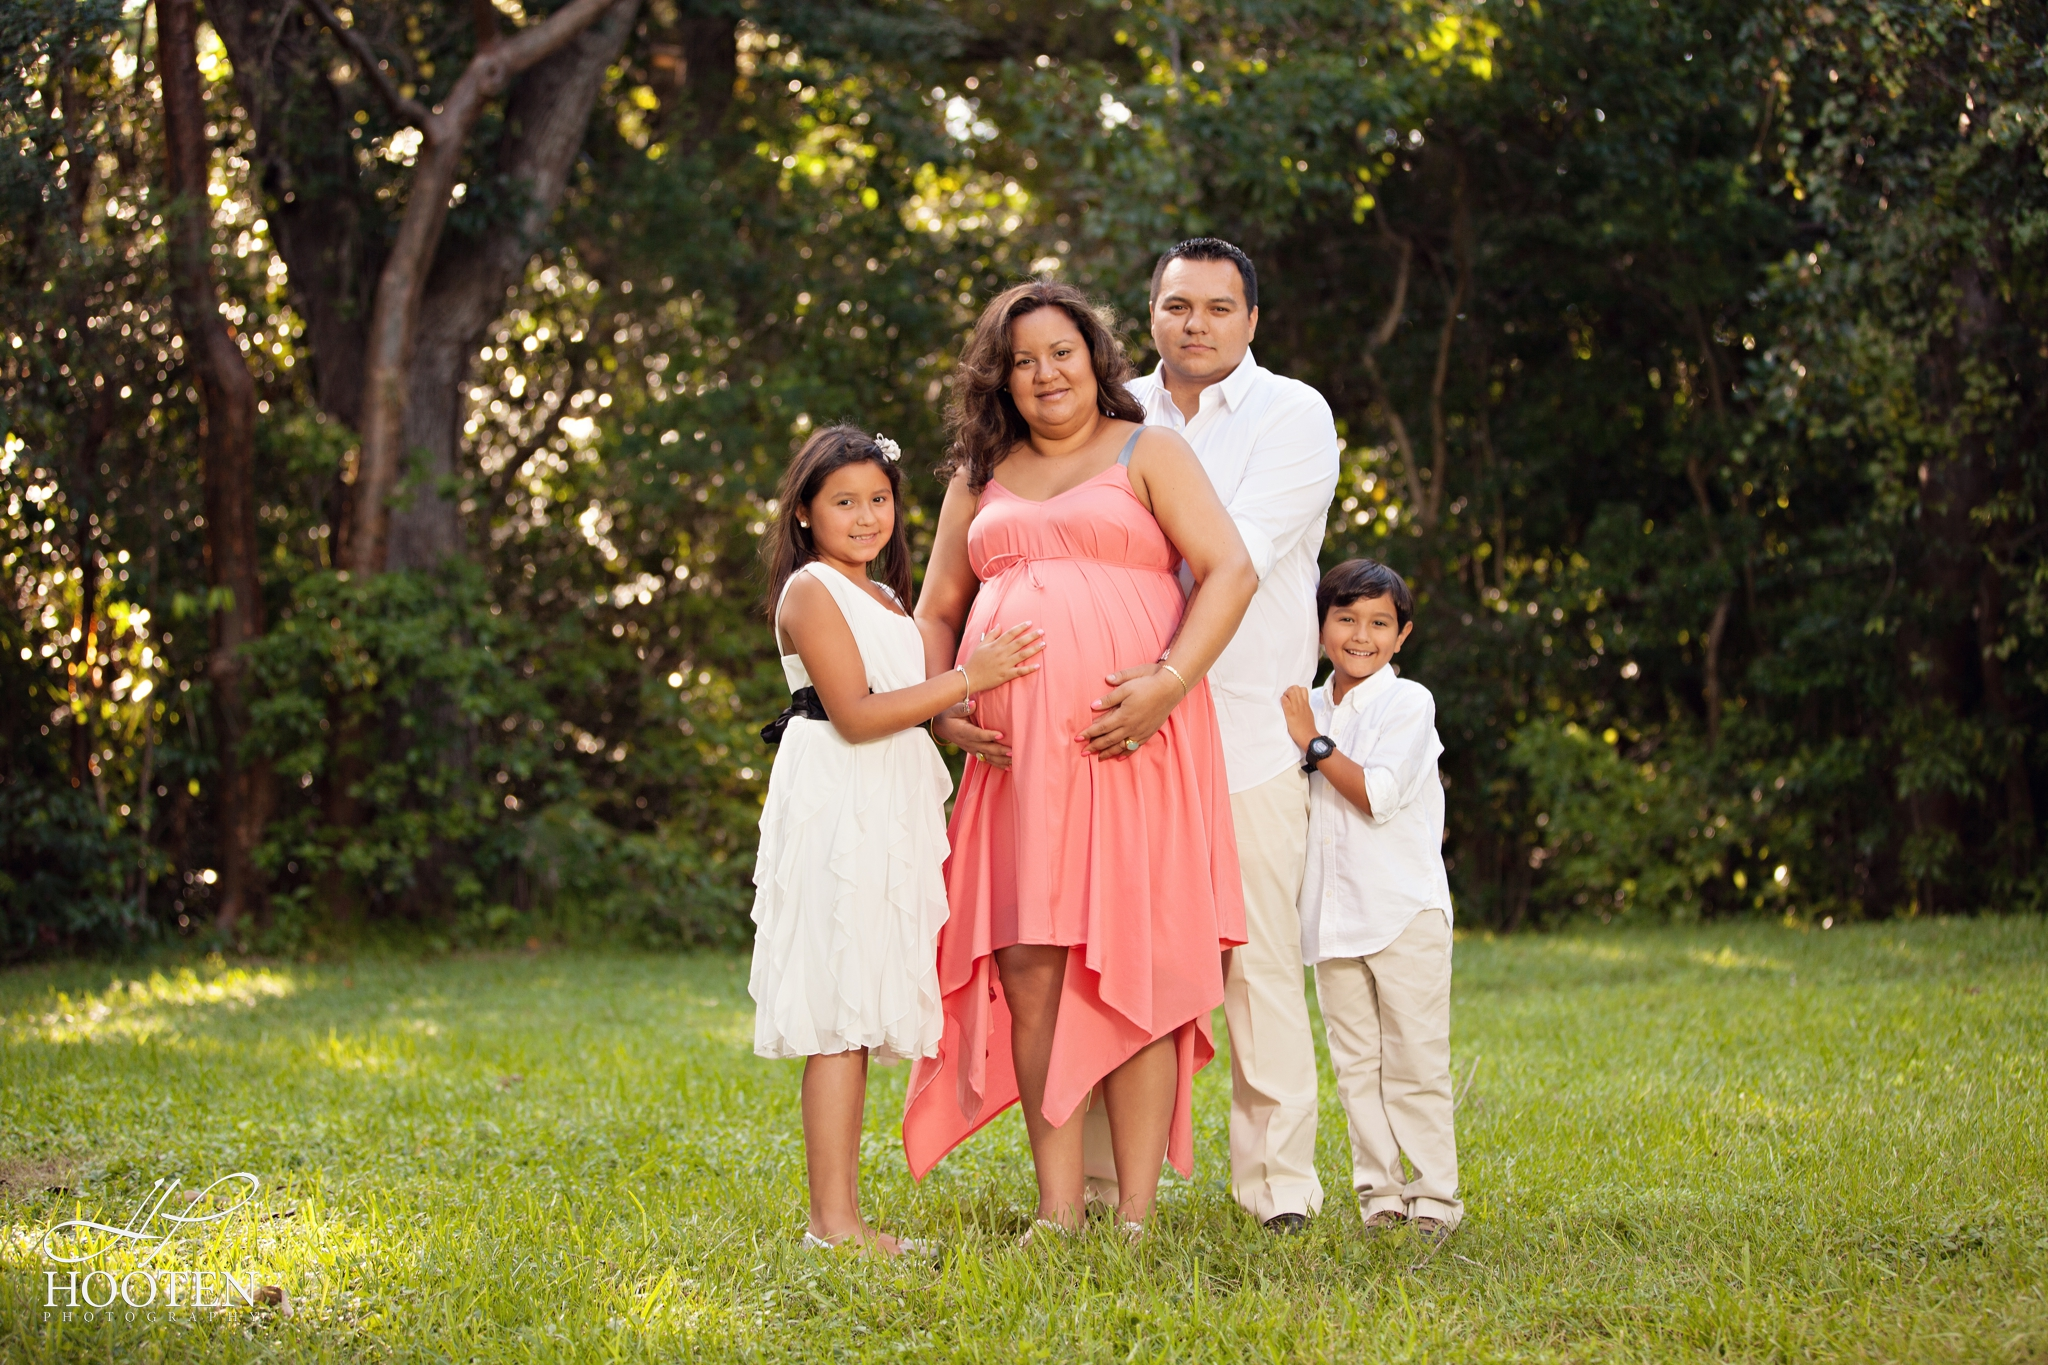 Miami-Maternity-Photography-Abdor-7903.jpg